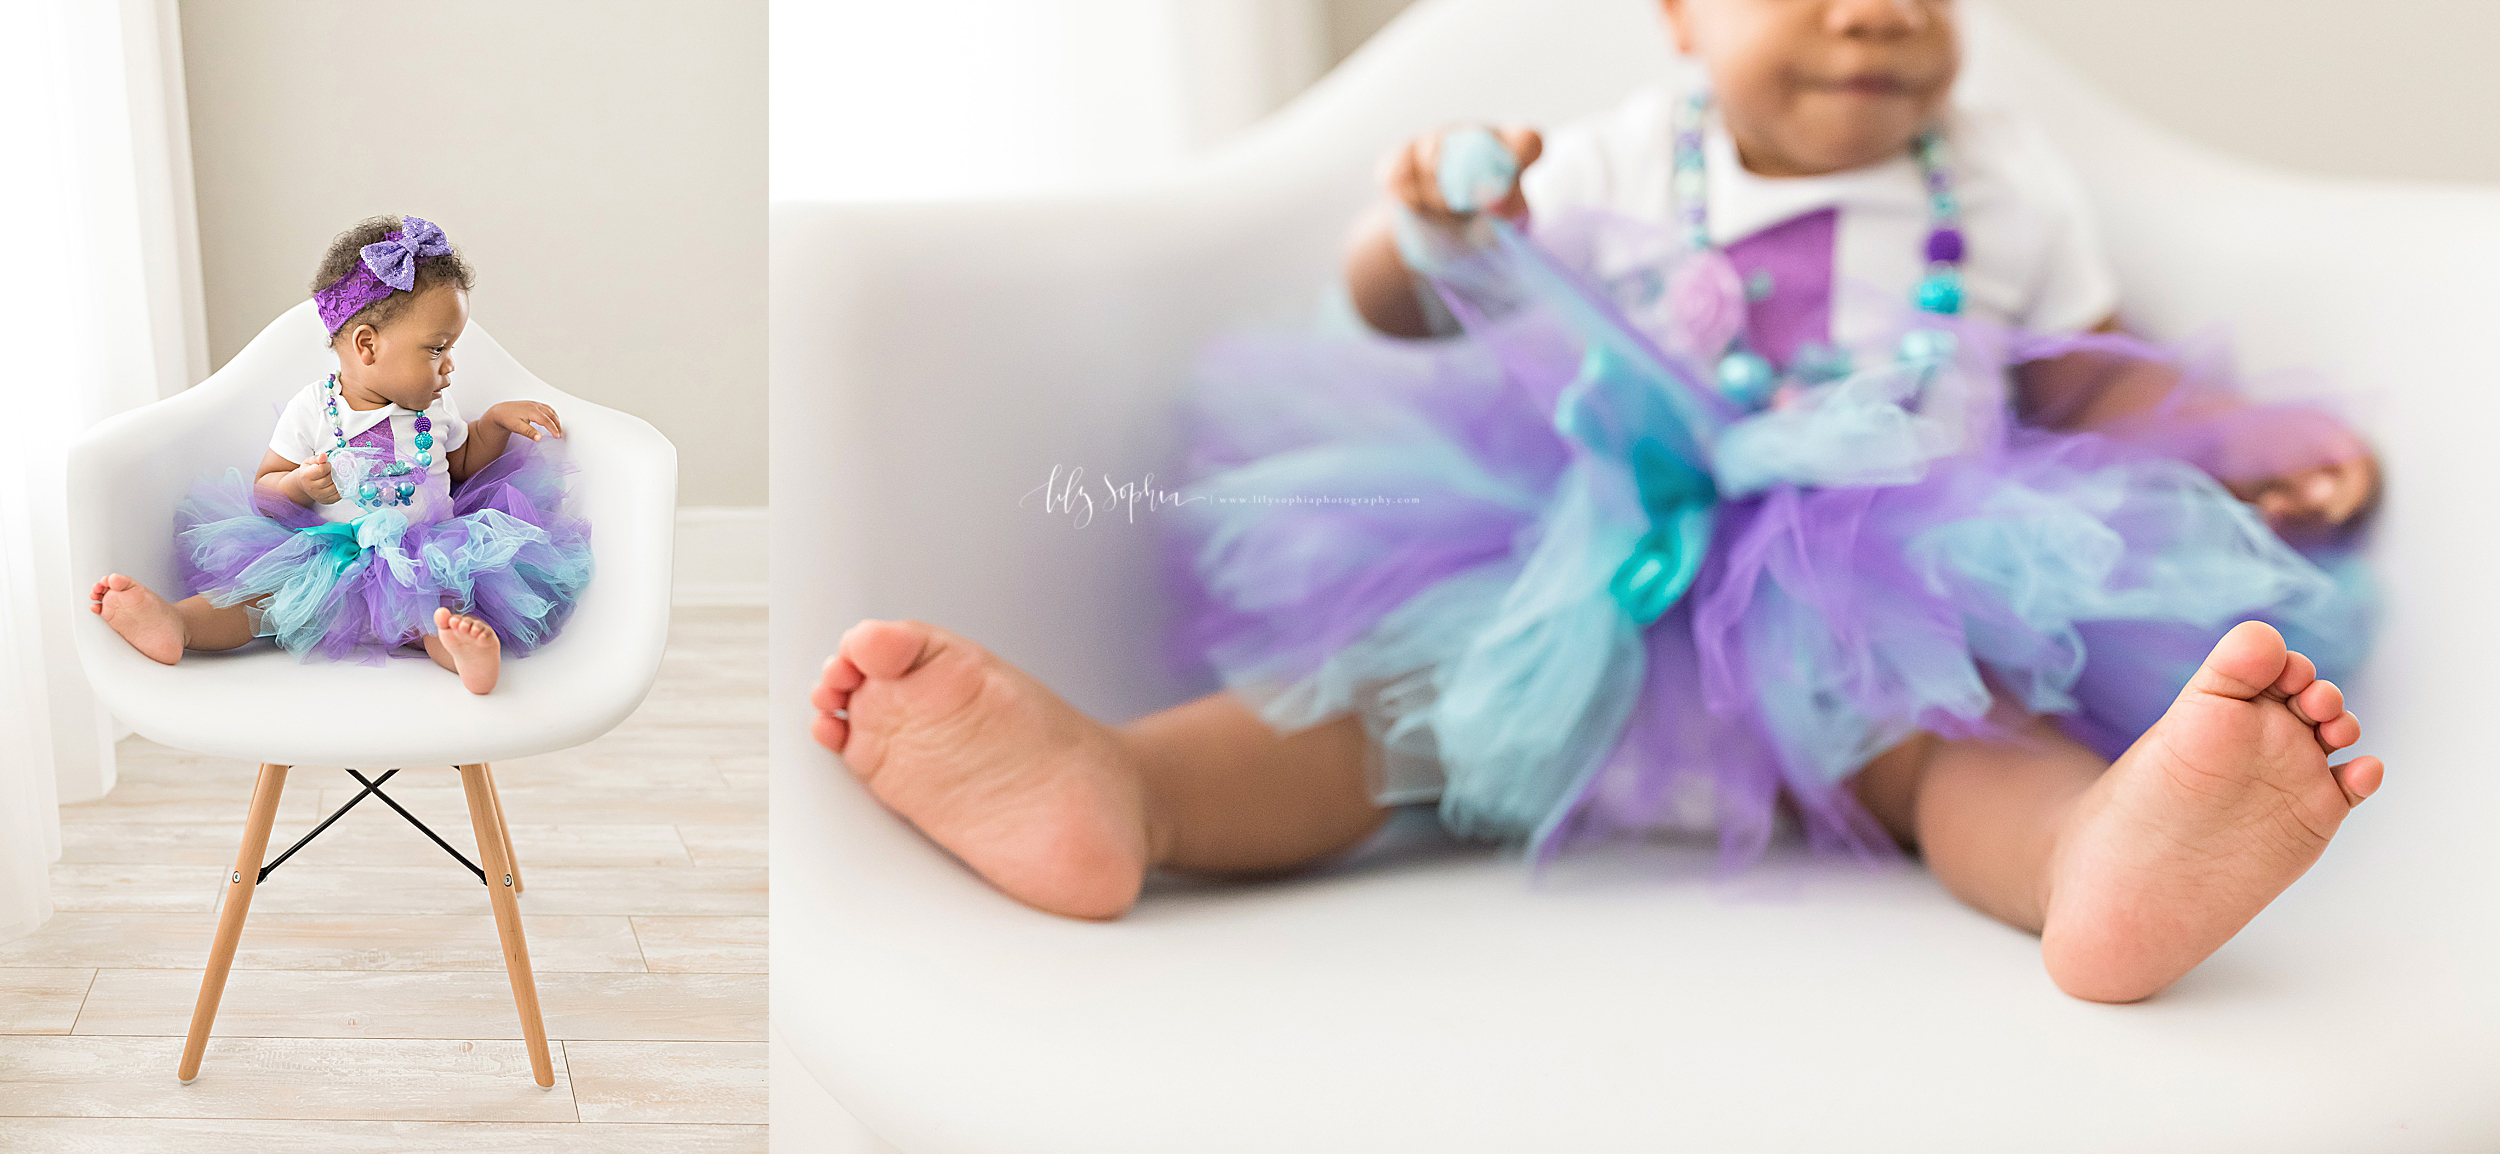 atlanta-buckhead-brookhaven-decatur-lily-sophia-photography--photographer-portraits-grant-park-intown-first-birthday-tutu-cake-smash_0992.jpg